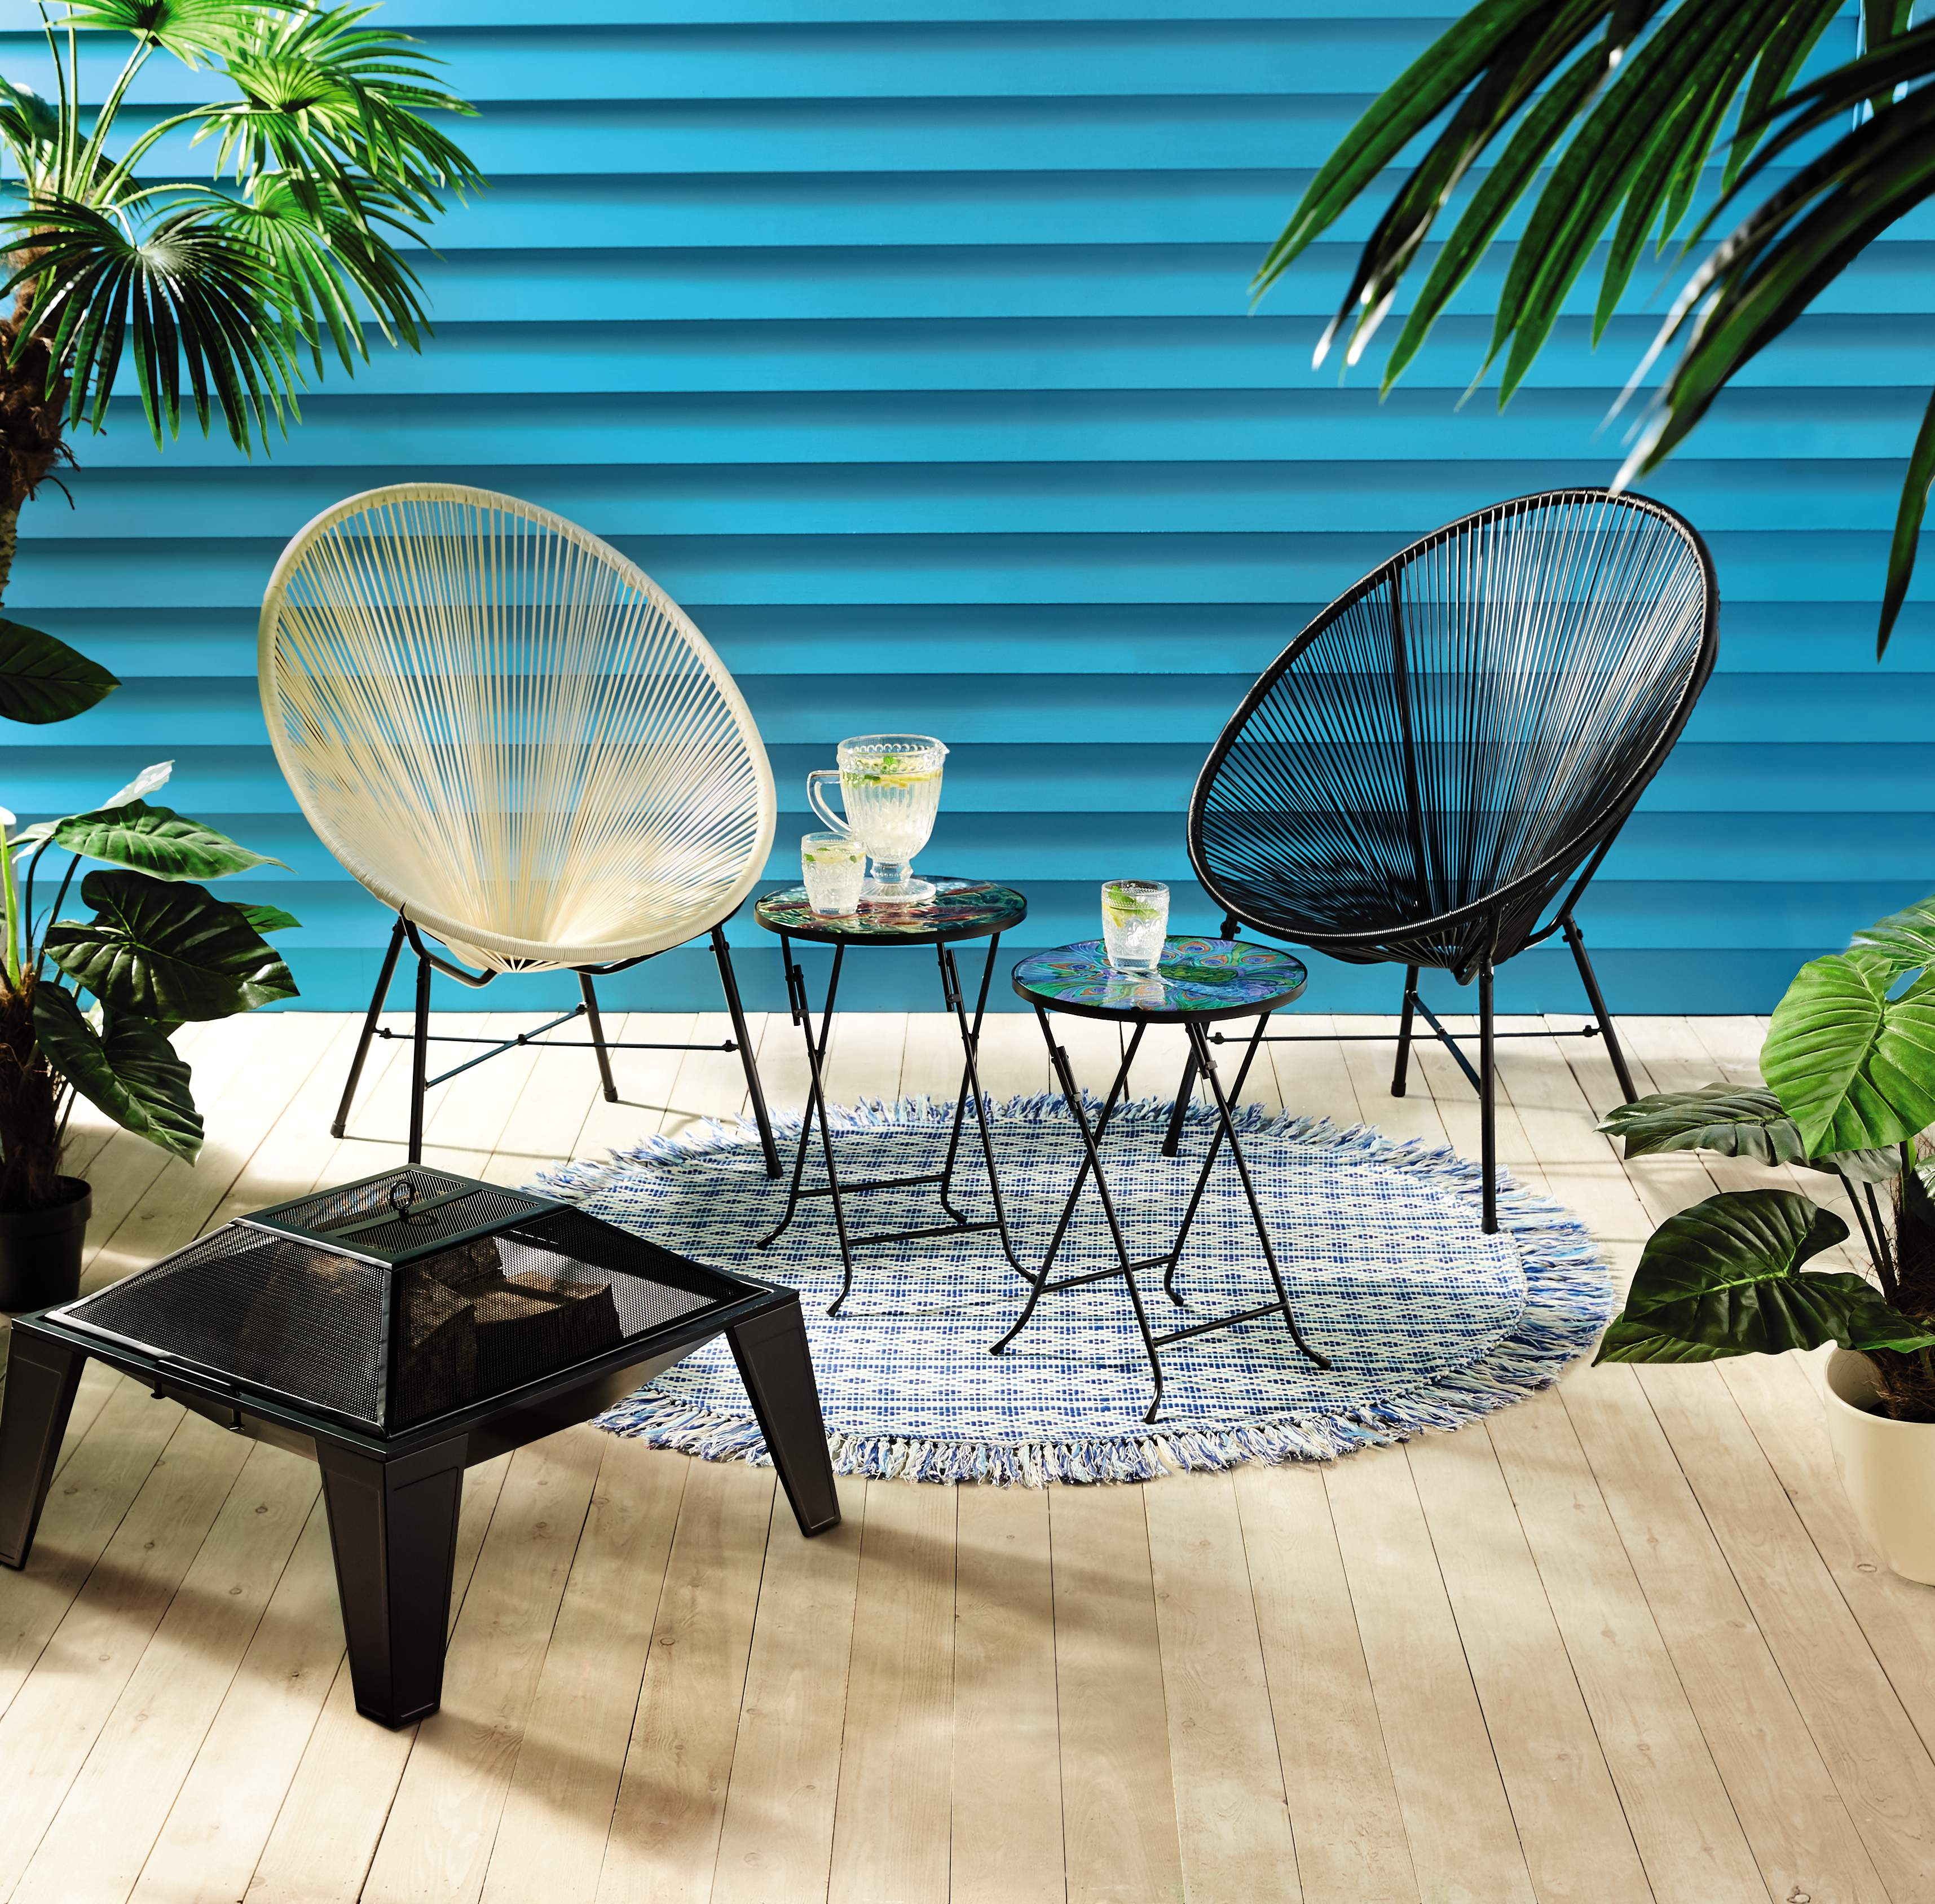 hanging chair aldi big round sofa update your outdoor space with s upcoming special buys a few small updates can make world of difference to and might just tick that box